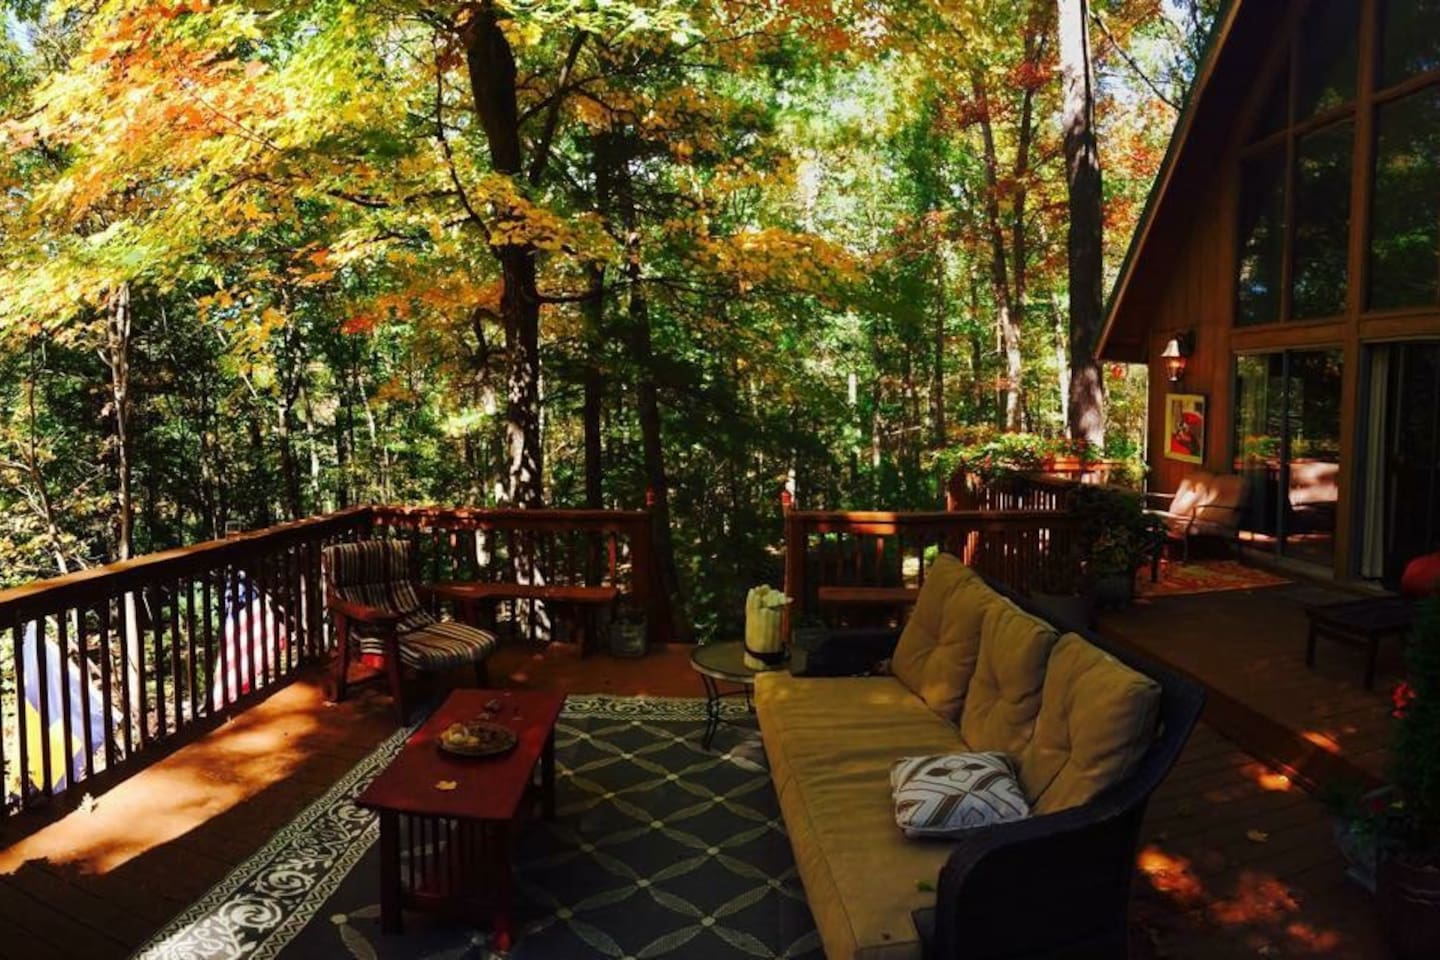 Beautiful deck with hot tub, two seating areas, full size couch, shade sail, umbrella & outdoor table.